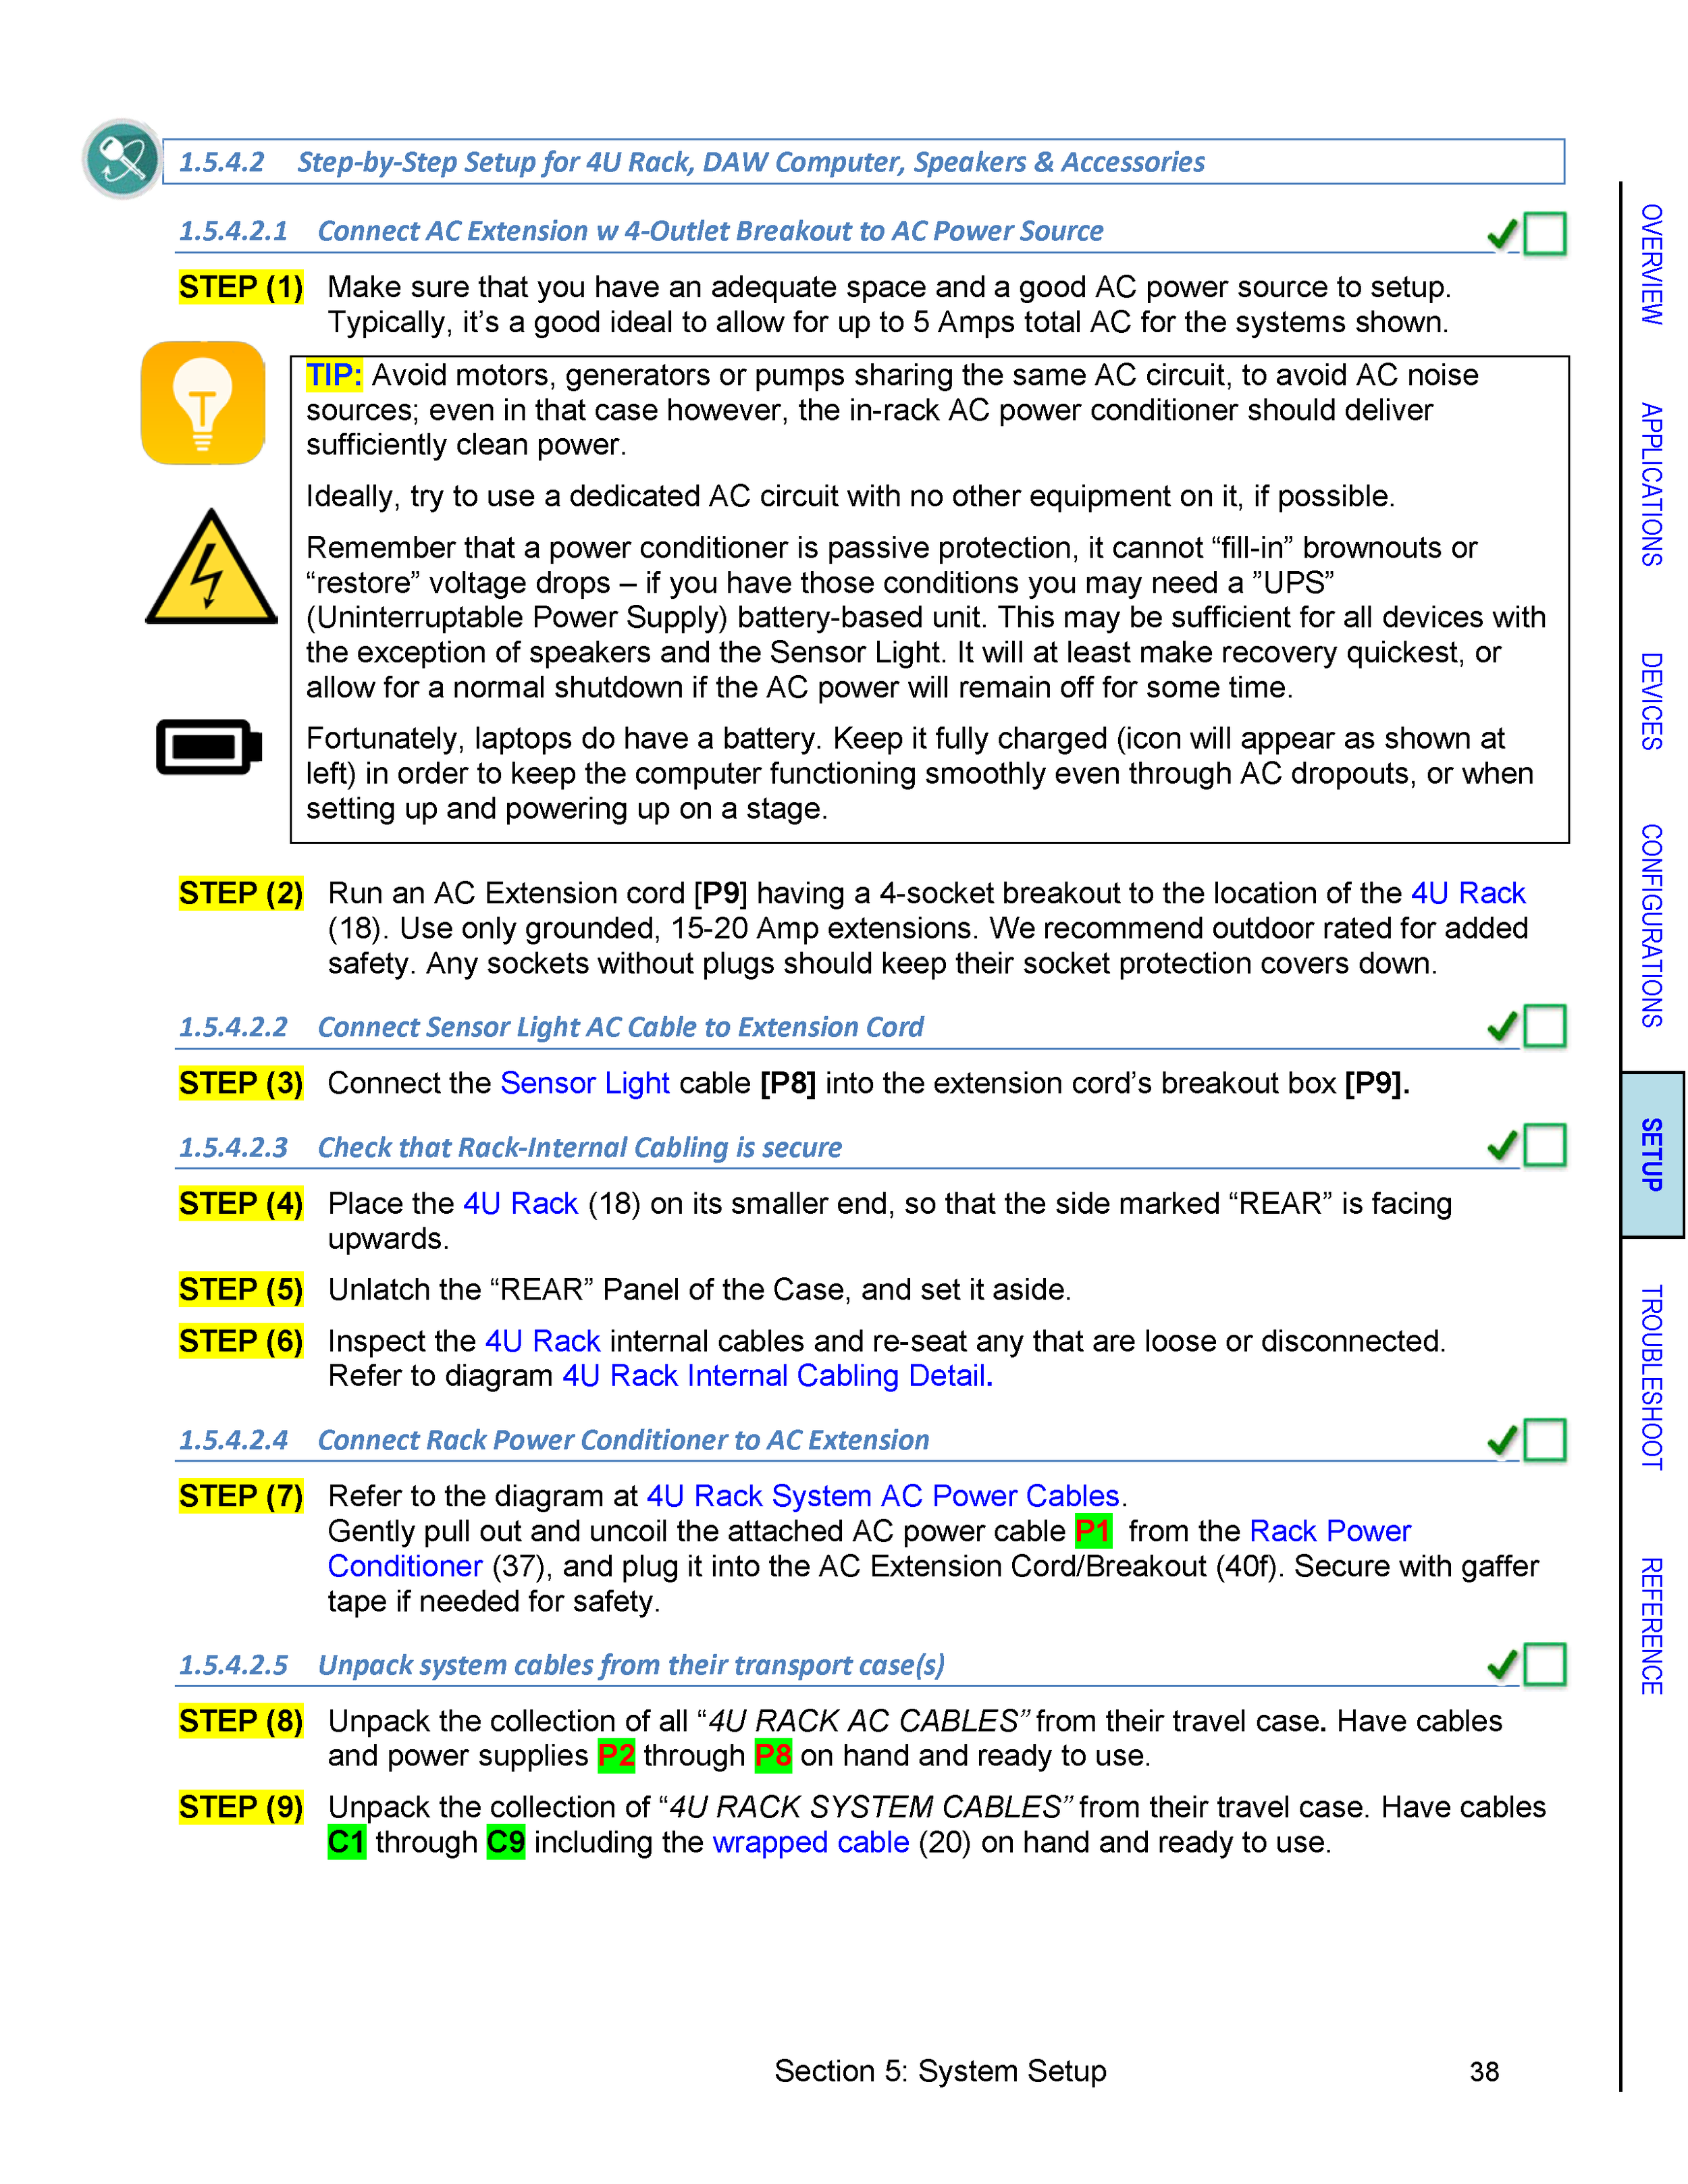 SpaceHarp_Systems_User_Guide_Oct-9th-2017_released_Page_38.png